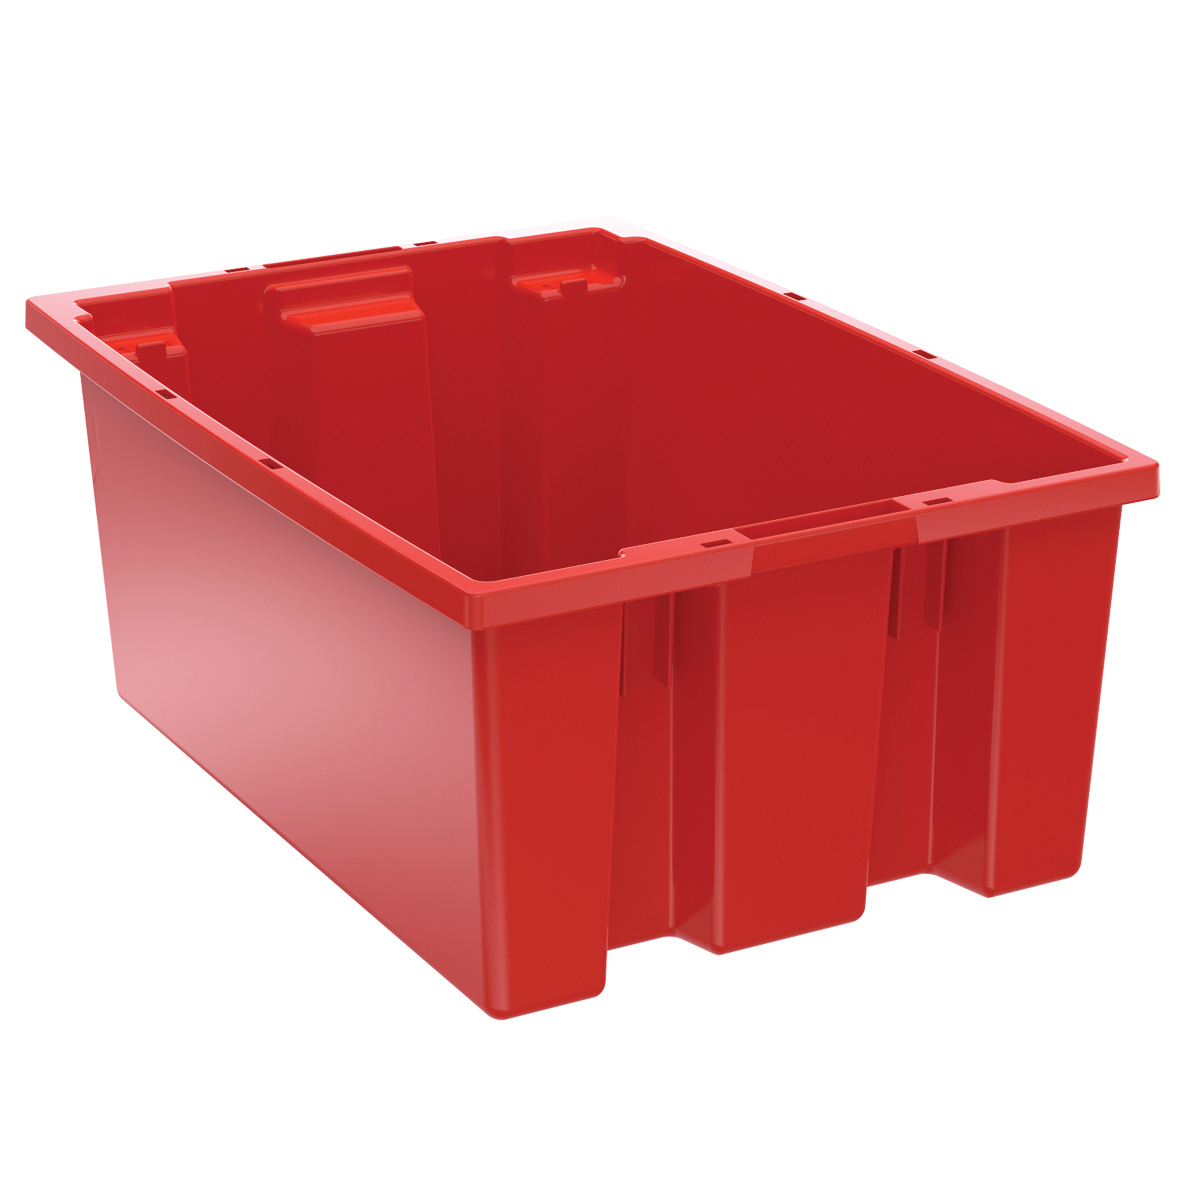 Nest & Stack Tote 19-1/2 x 13-1/2 x 8, Red (35200RED).  This item sold in carton quantities of 6.